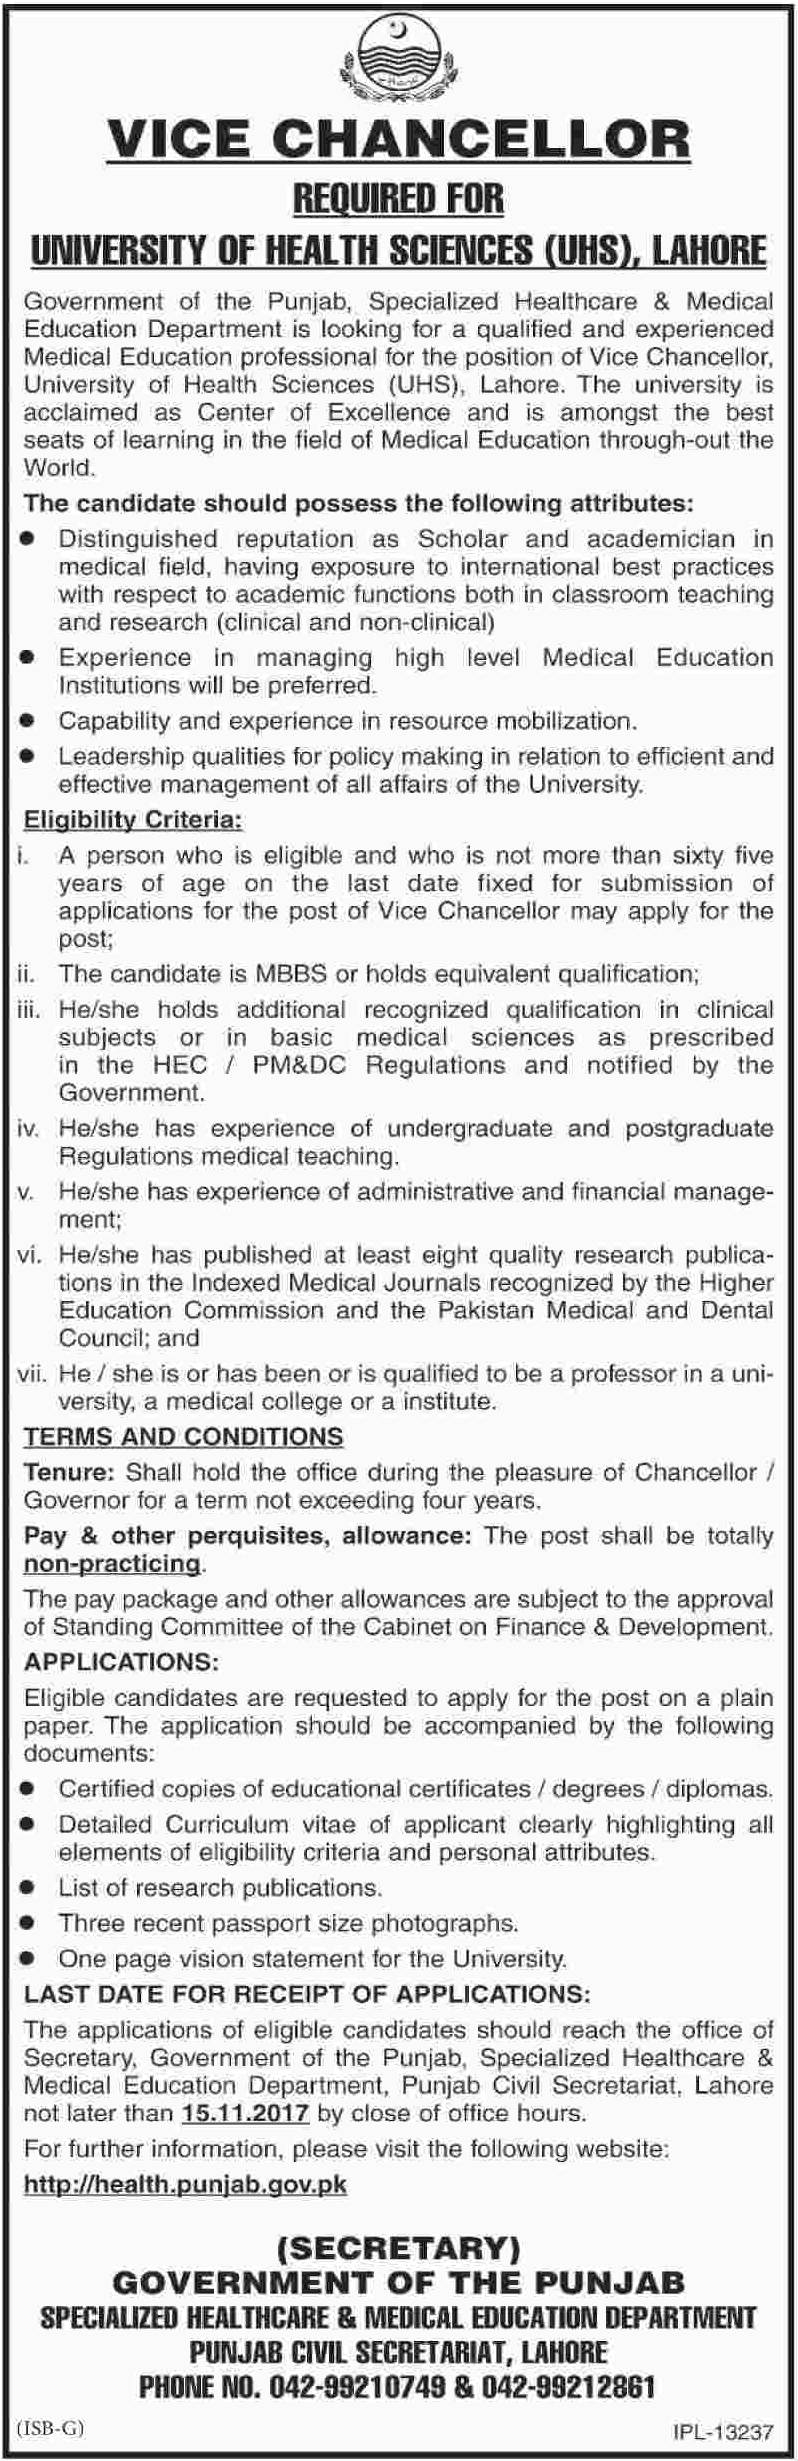 University of Health Sciences UHS Lahore required